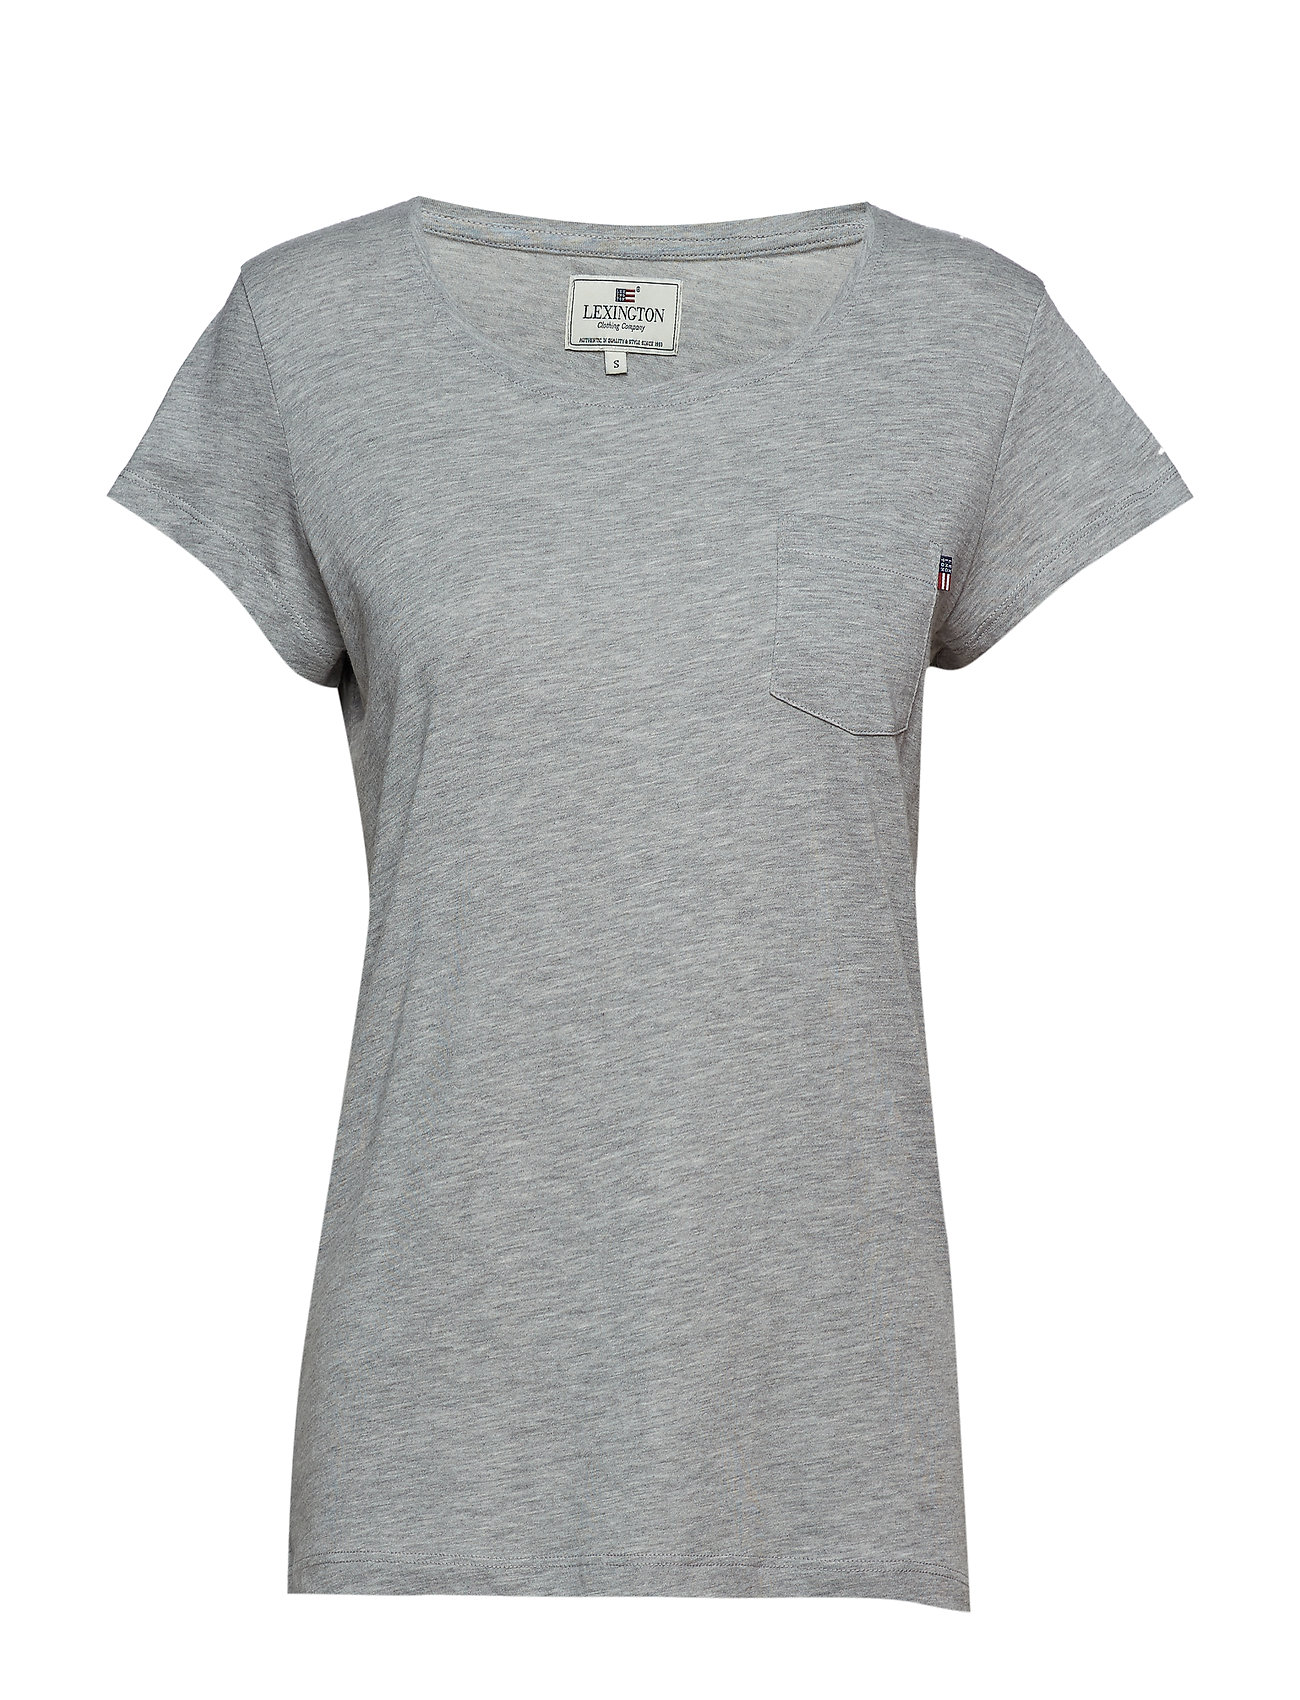 Lexington Clothing Ashley Jersey Tee - LT WARM GRAY MELANGE